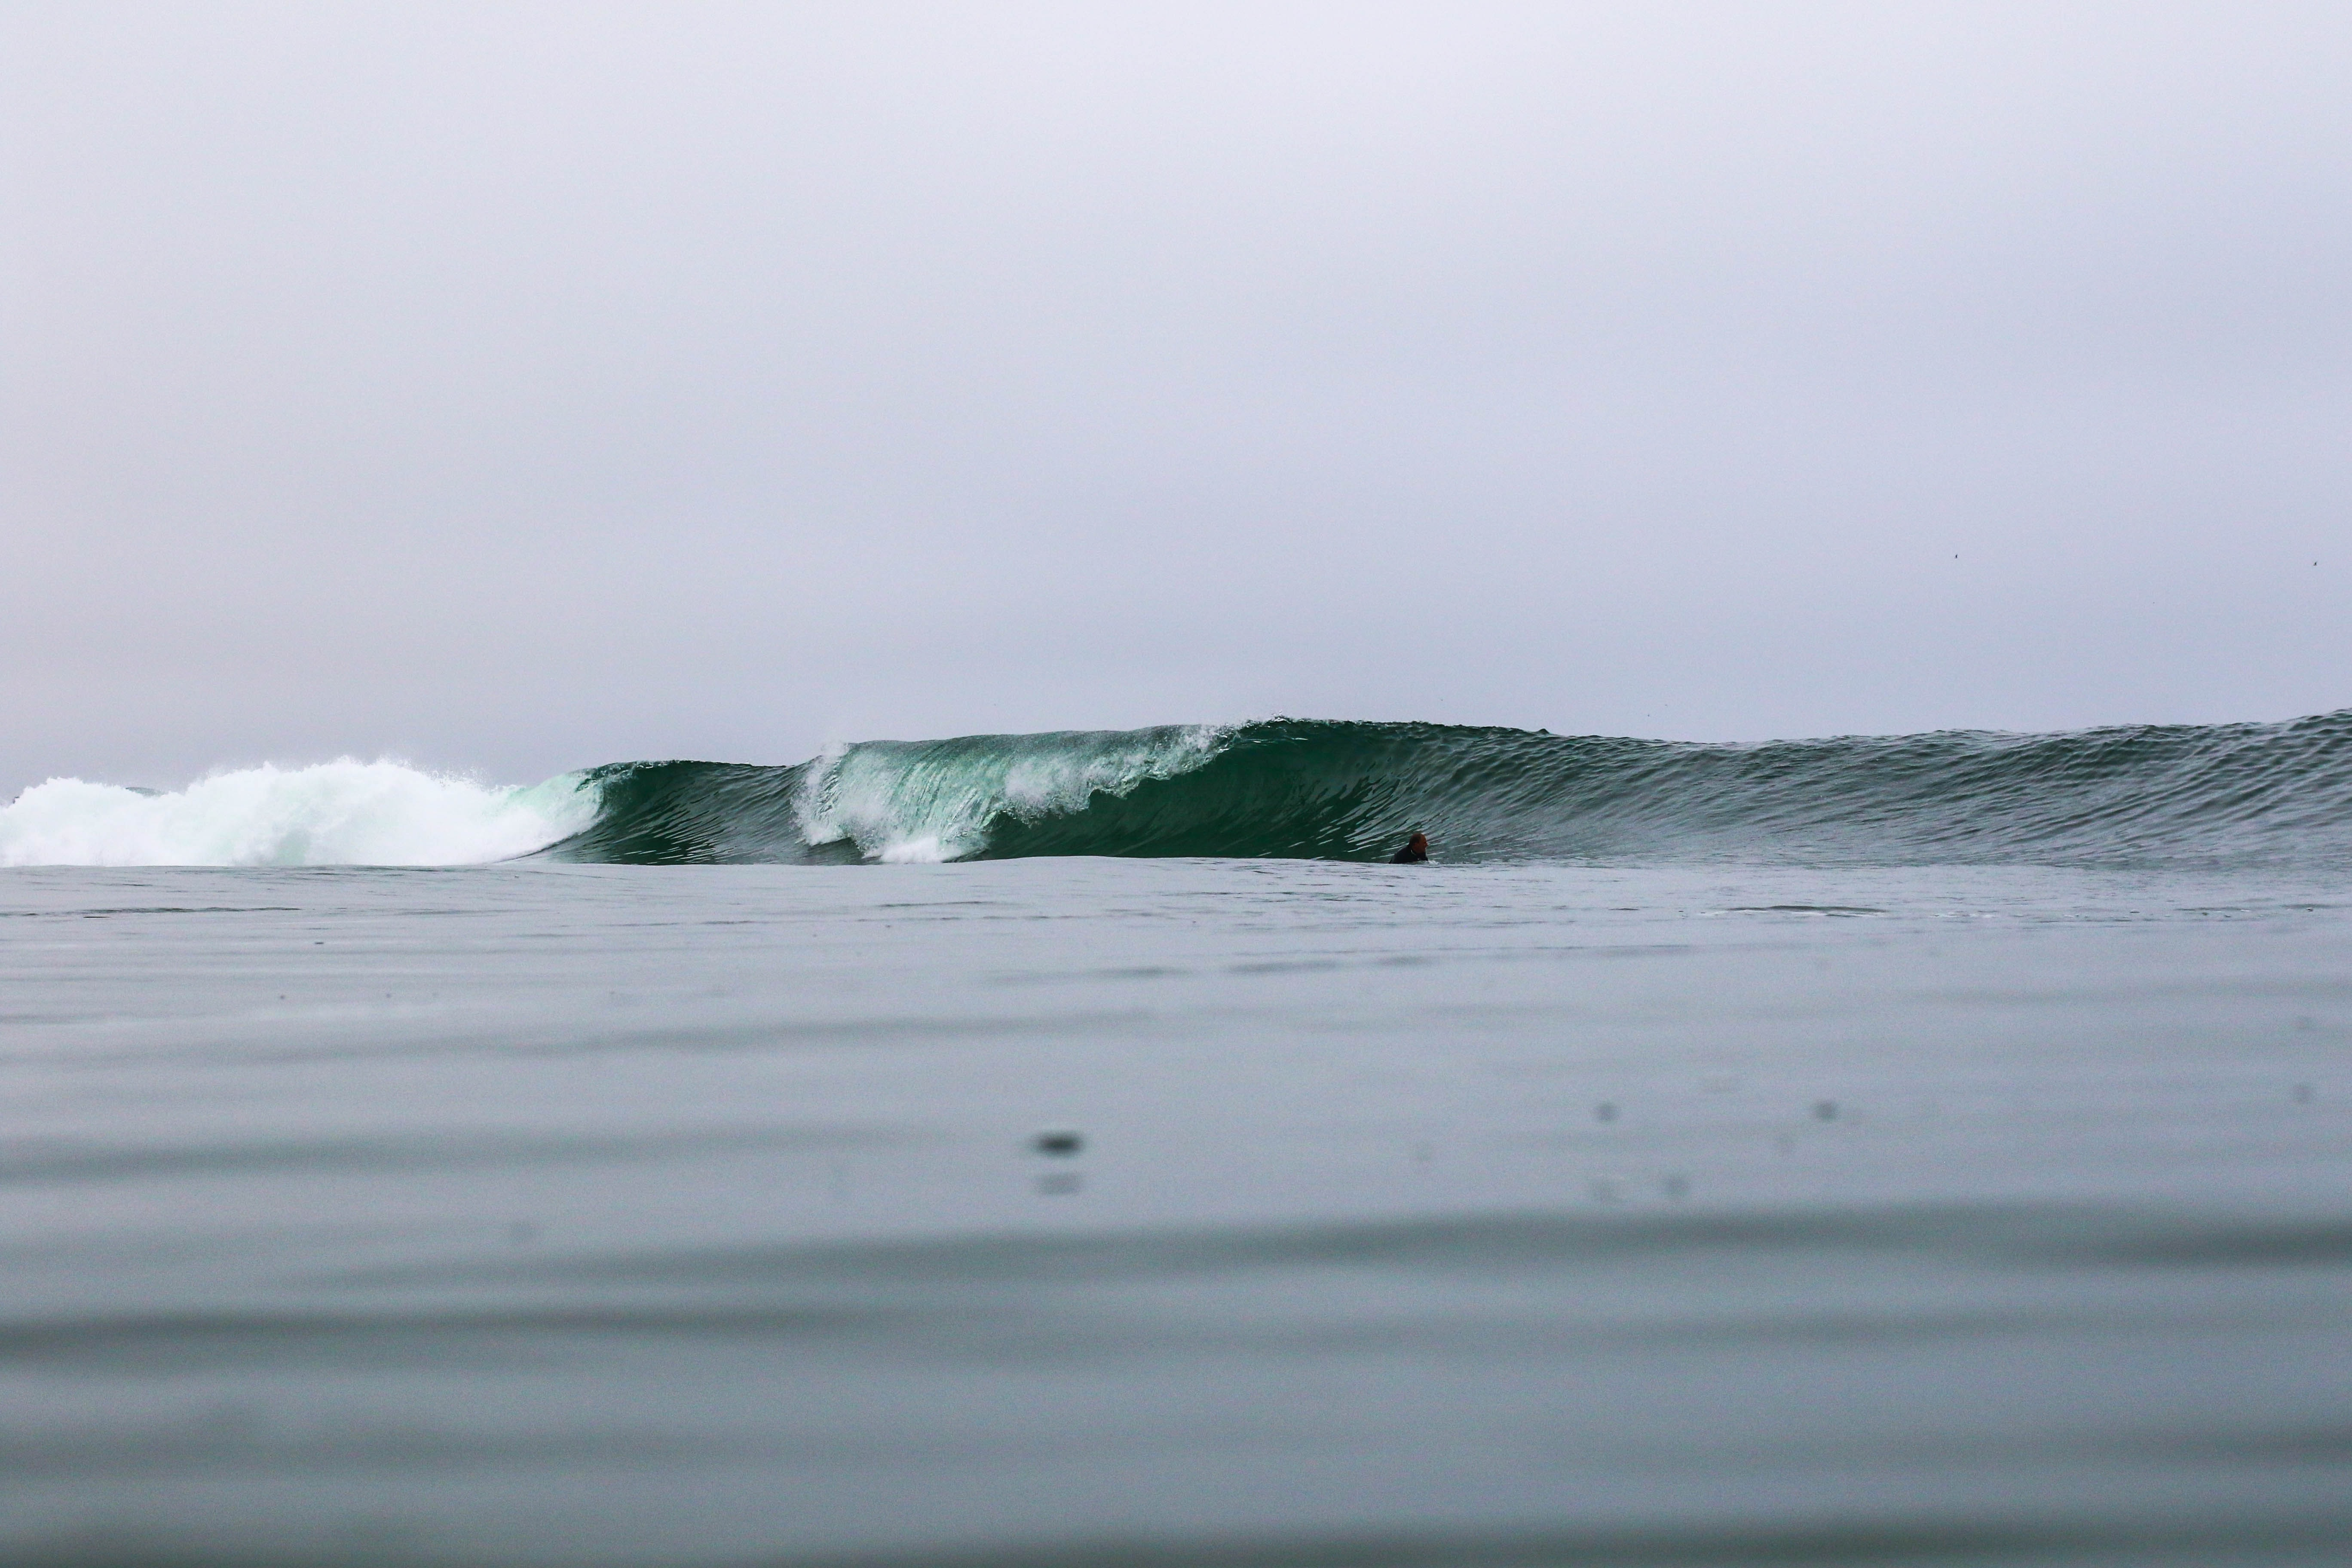 Surfer in the water going towards big surf wave at Newport Beach